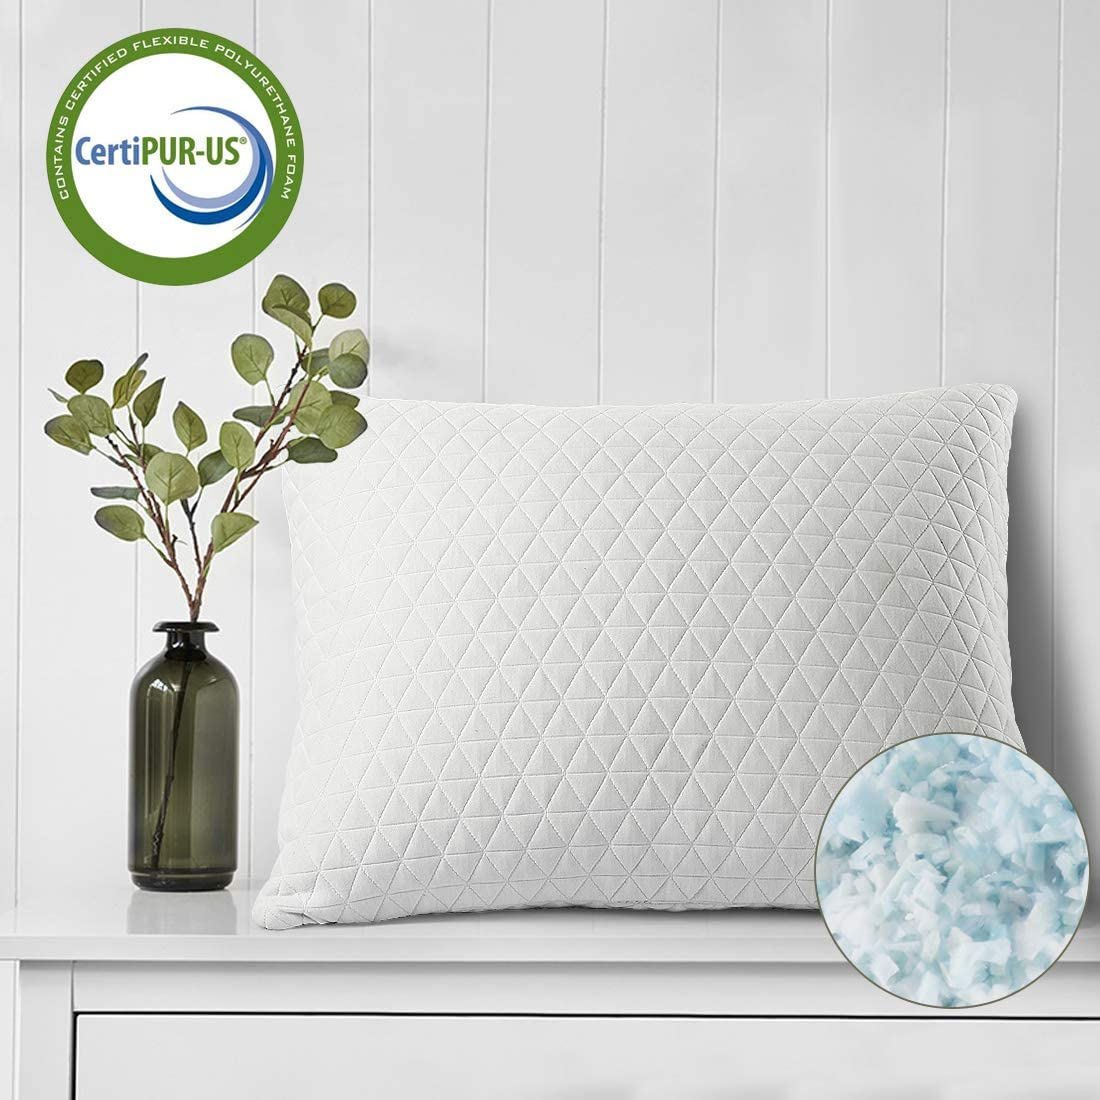 COHOME Adjustable Cross-Cut Memory Foam Pillow for Sleeping Premium Foam Hypoallergenic Cooling Soft Bamboo Derived Rayon Cover - Easy Breather -Washable -CertiPUR-US-Queen